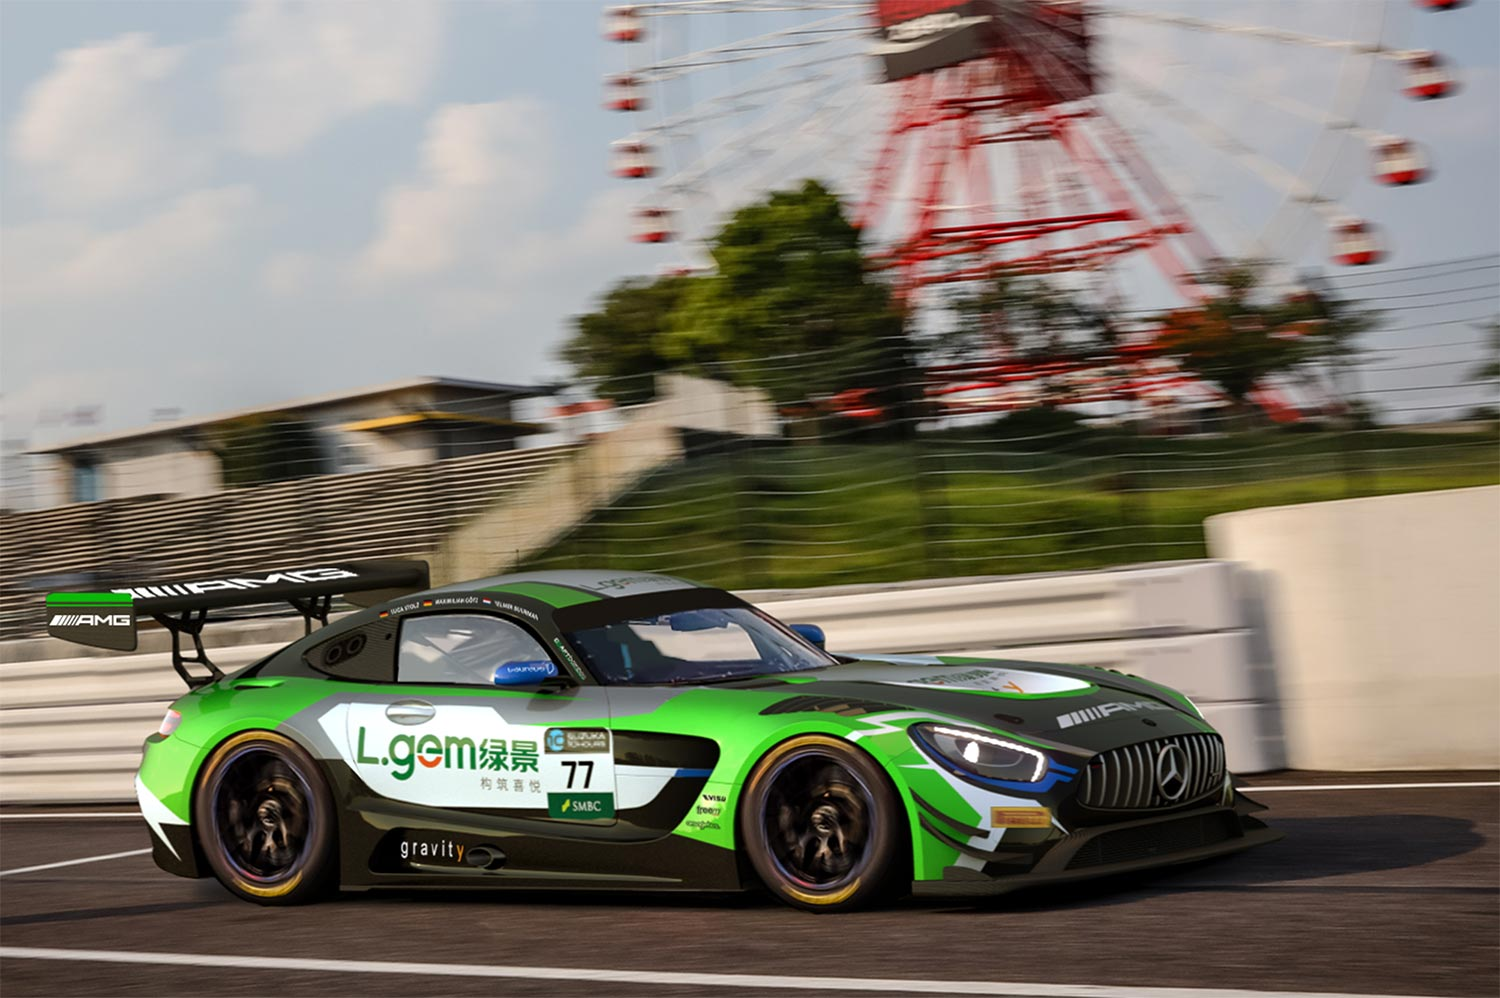 Mercedes-AMG Team Craft-Bamboo Racing confirms star line-up for Suzuka 10 Hours